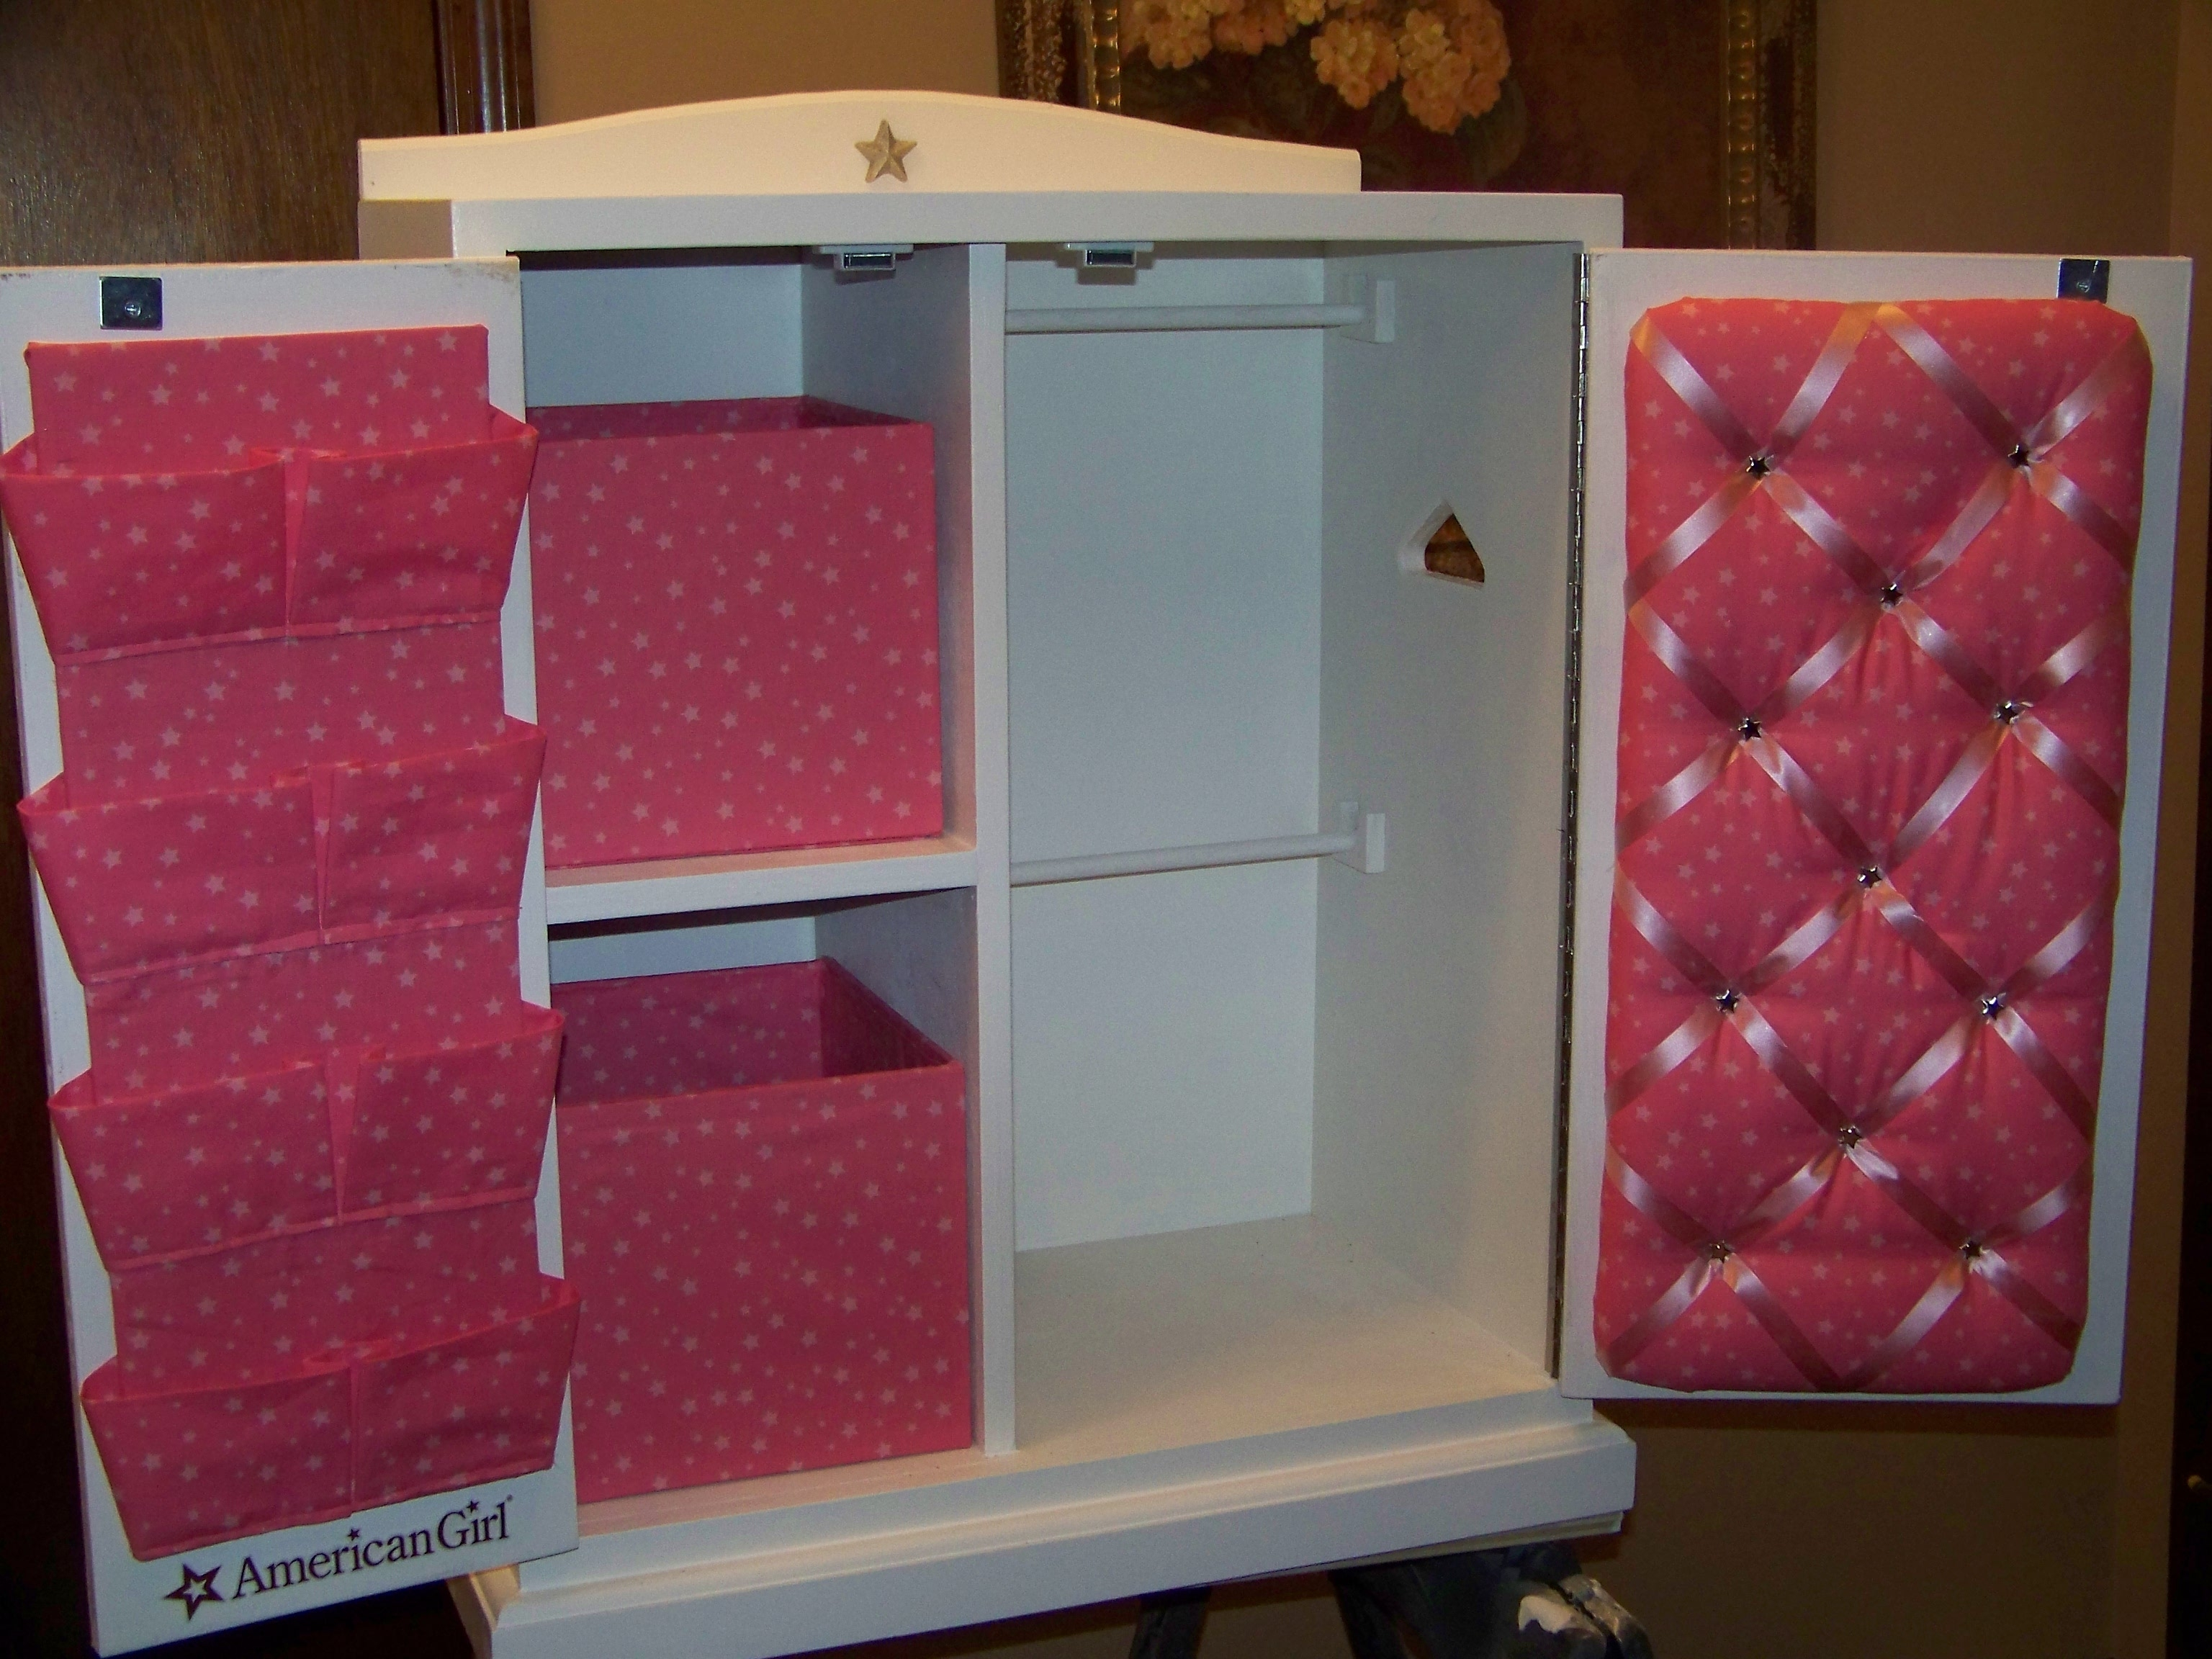 American Girl Doll Storage Cabinetcloset ideas for pretty wardrobe closet for american girl doll